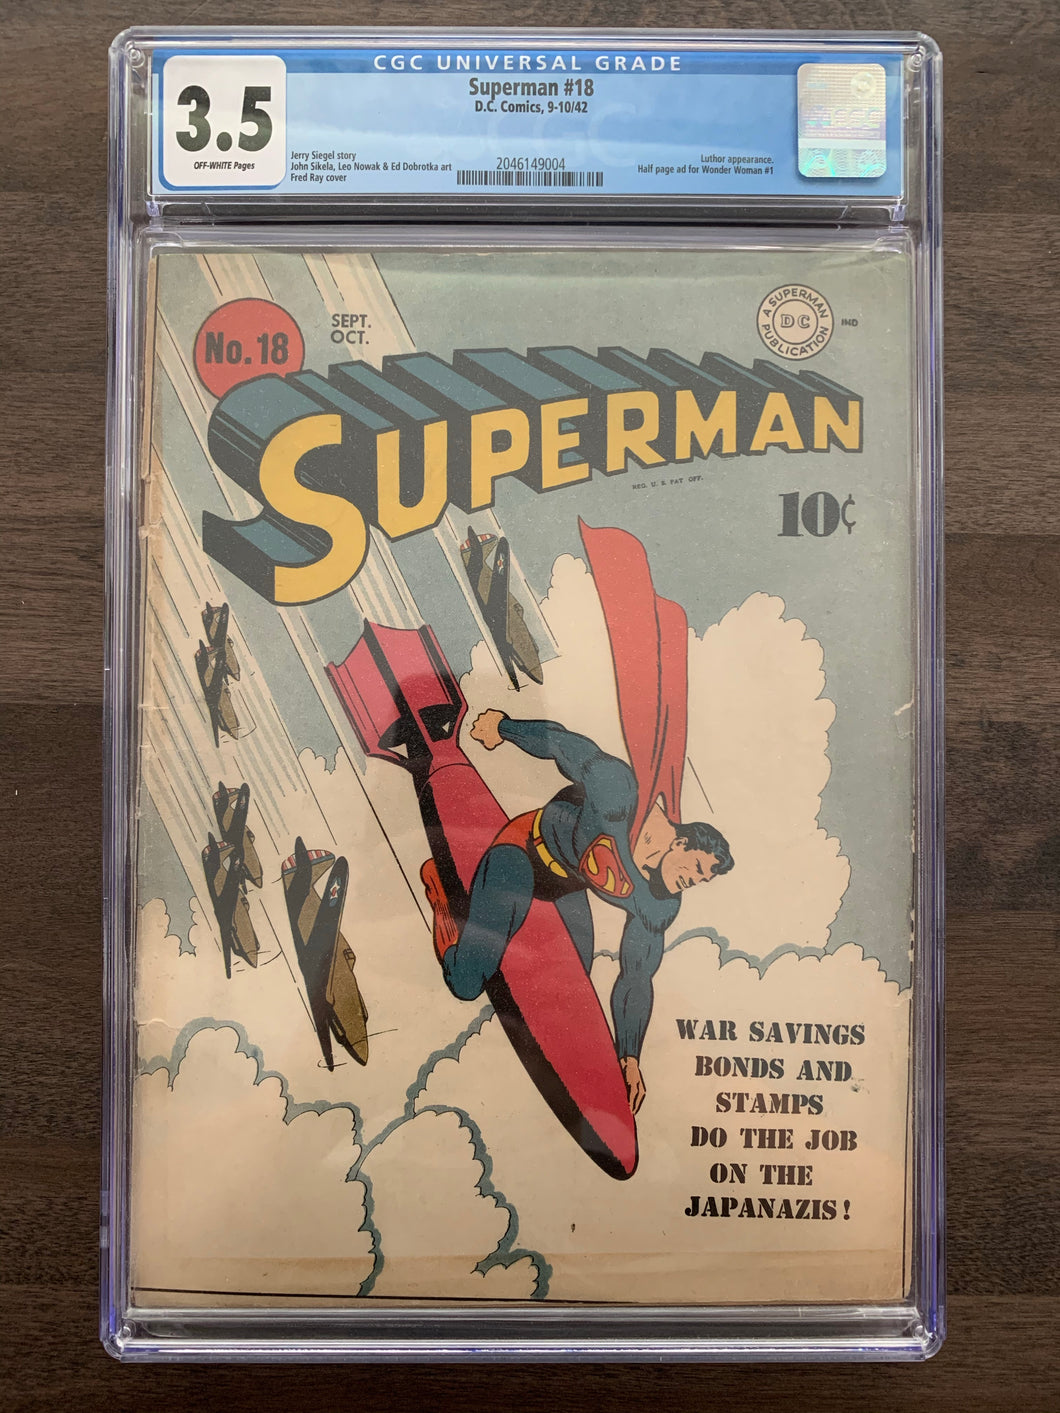 Superman #18 CGC 3.5 - Lex Luthor